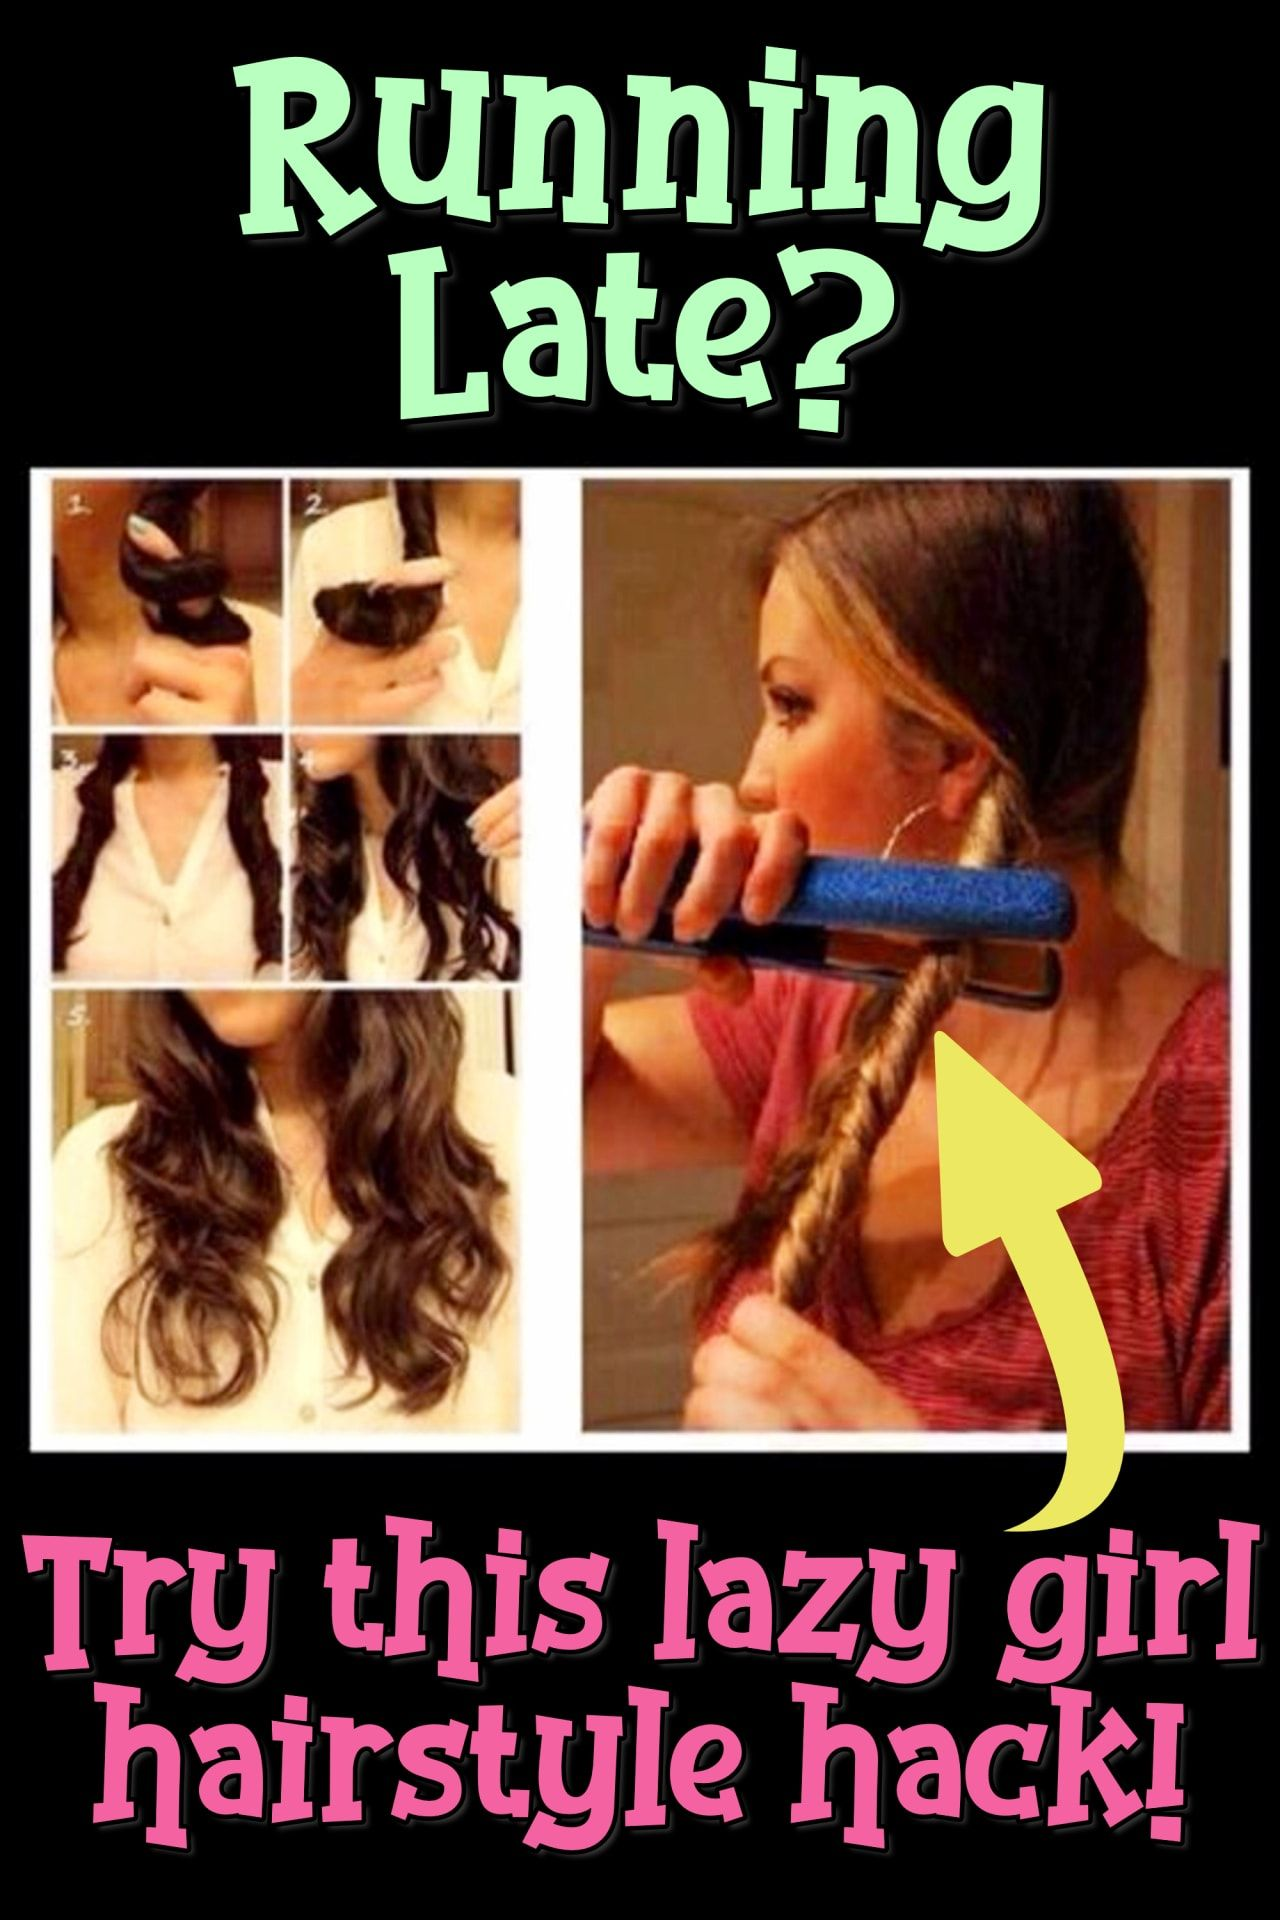 10 Easy Lazy Girl Hairstyle Ideas Step By Step Video Tutorials For Lazy Day Running Late Quick Hairstyles Clever Diy Ideas Lazy Girl Hairstyles Lazy Hairstyles Easy Everyday Hairstyles